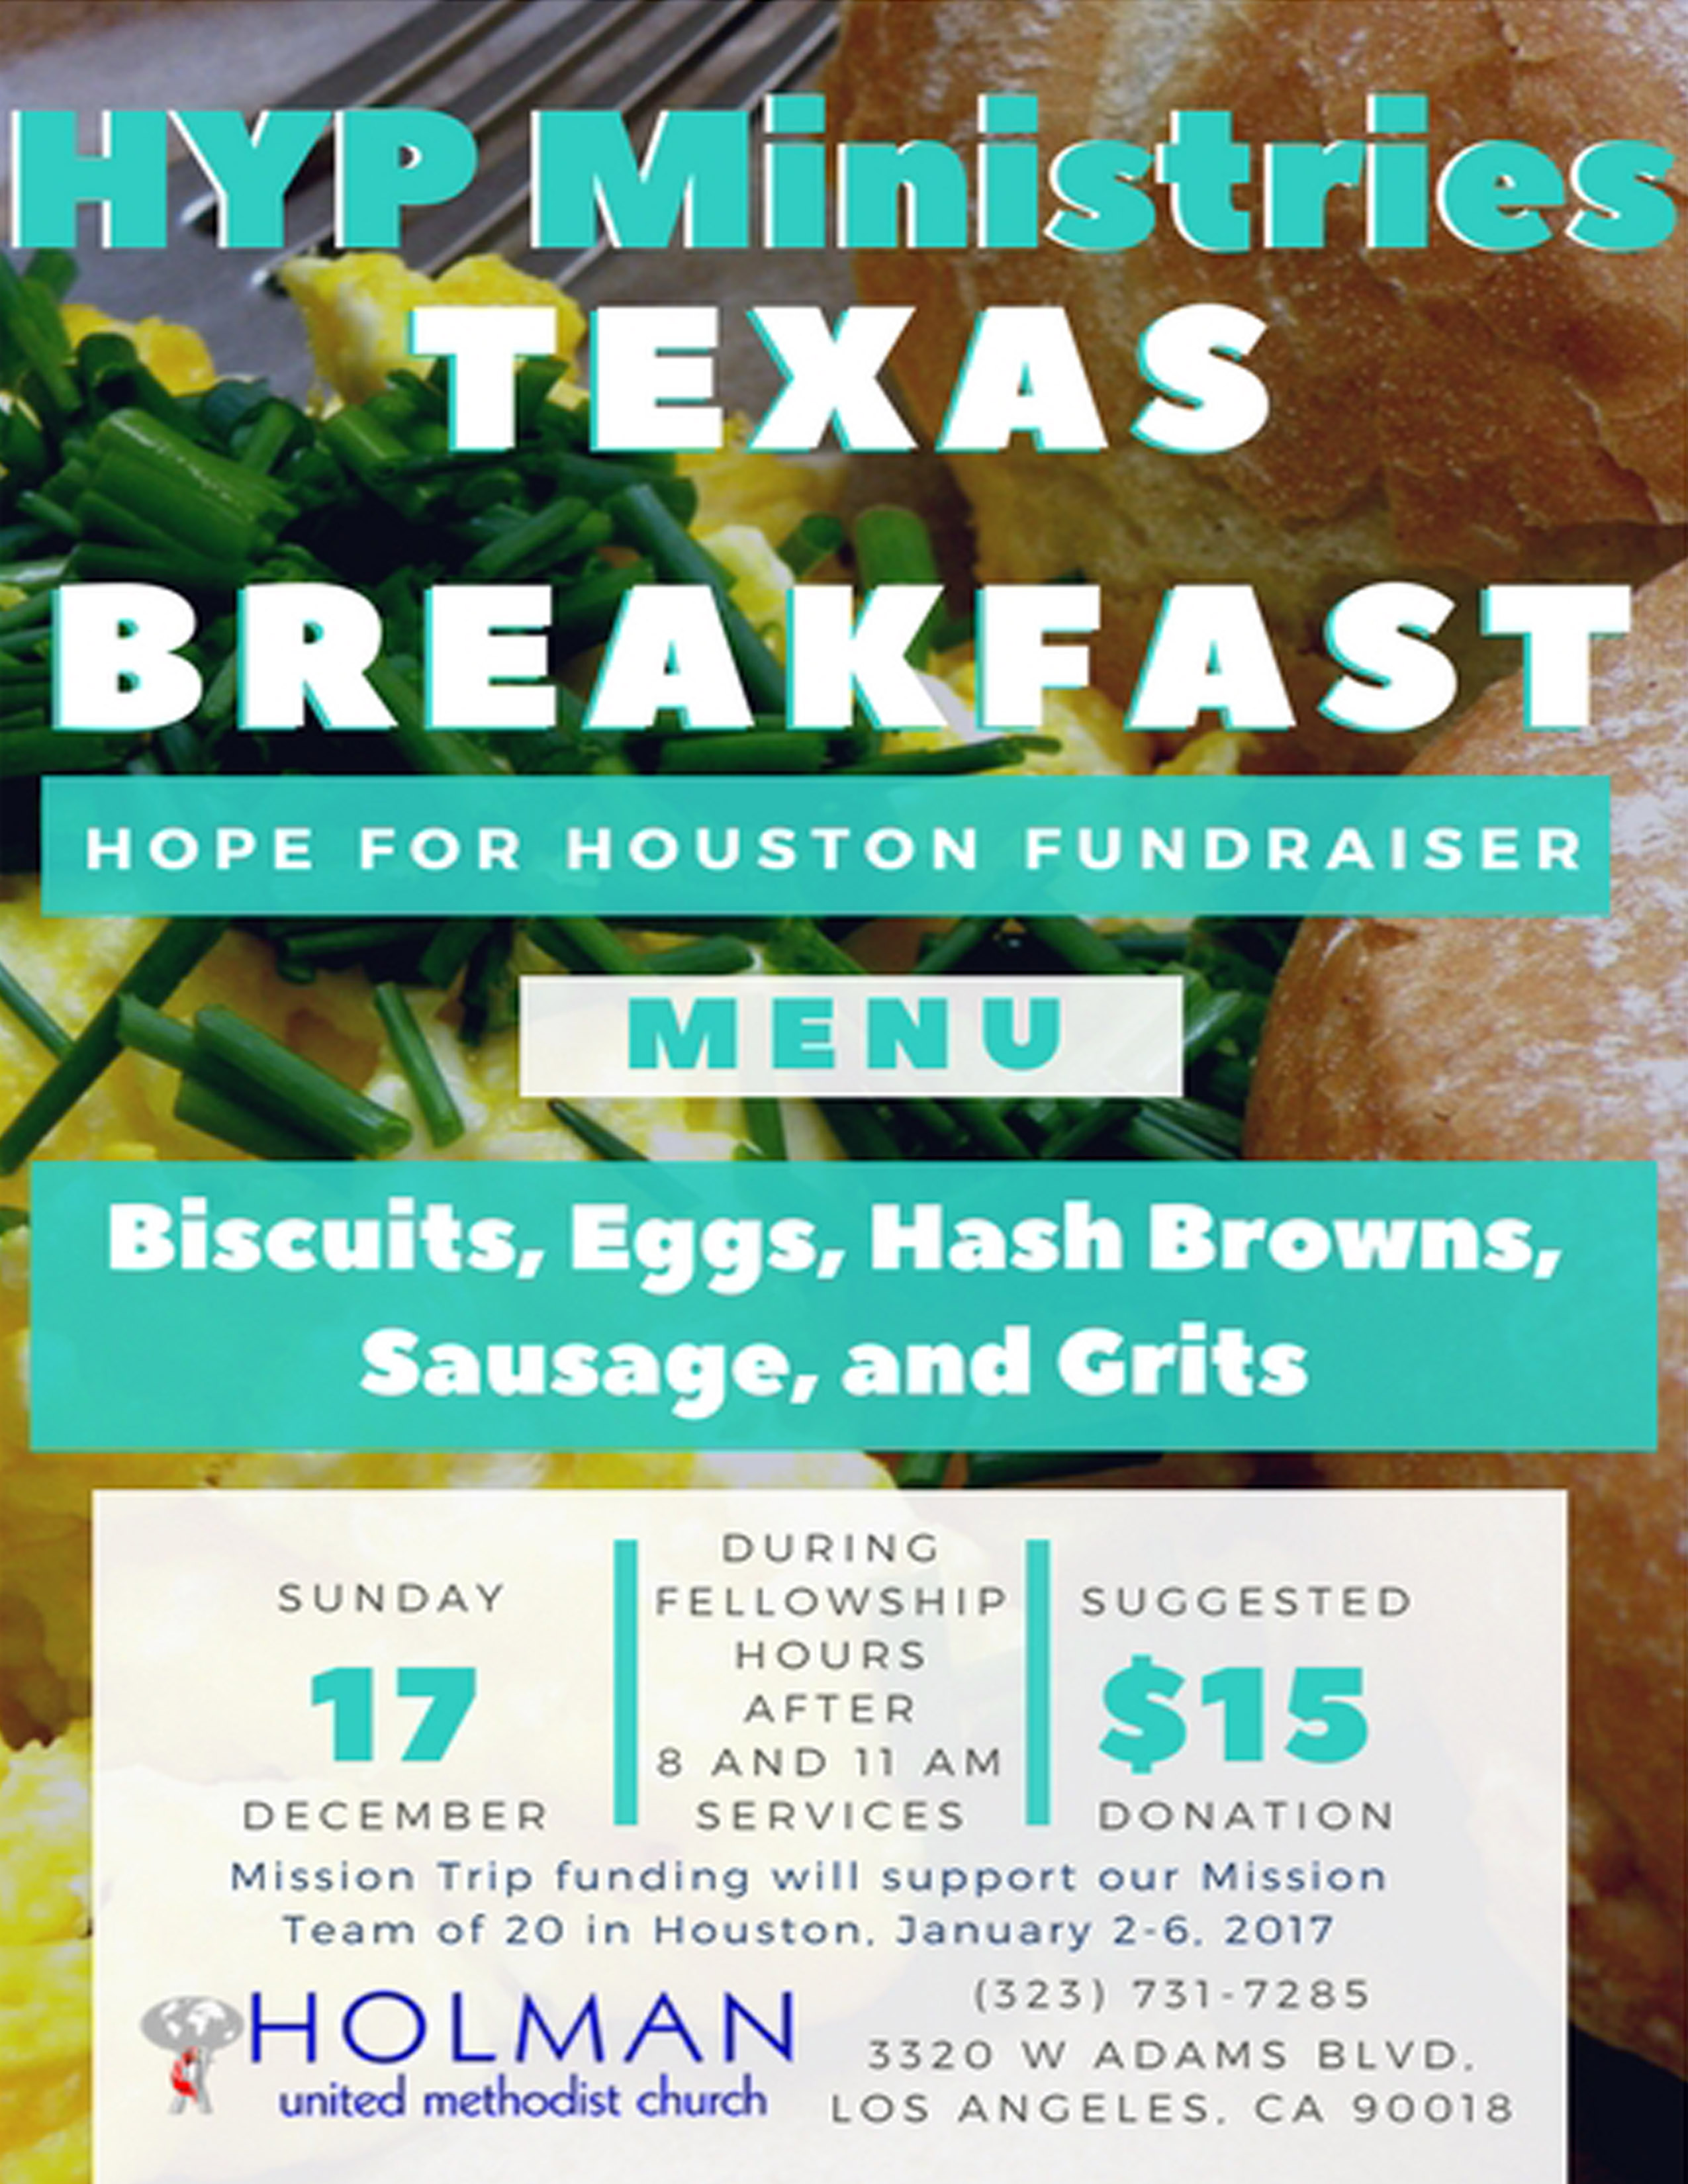 HYP Ministries Texas Breakfast: Hope for Houston Fundraiser – Holman